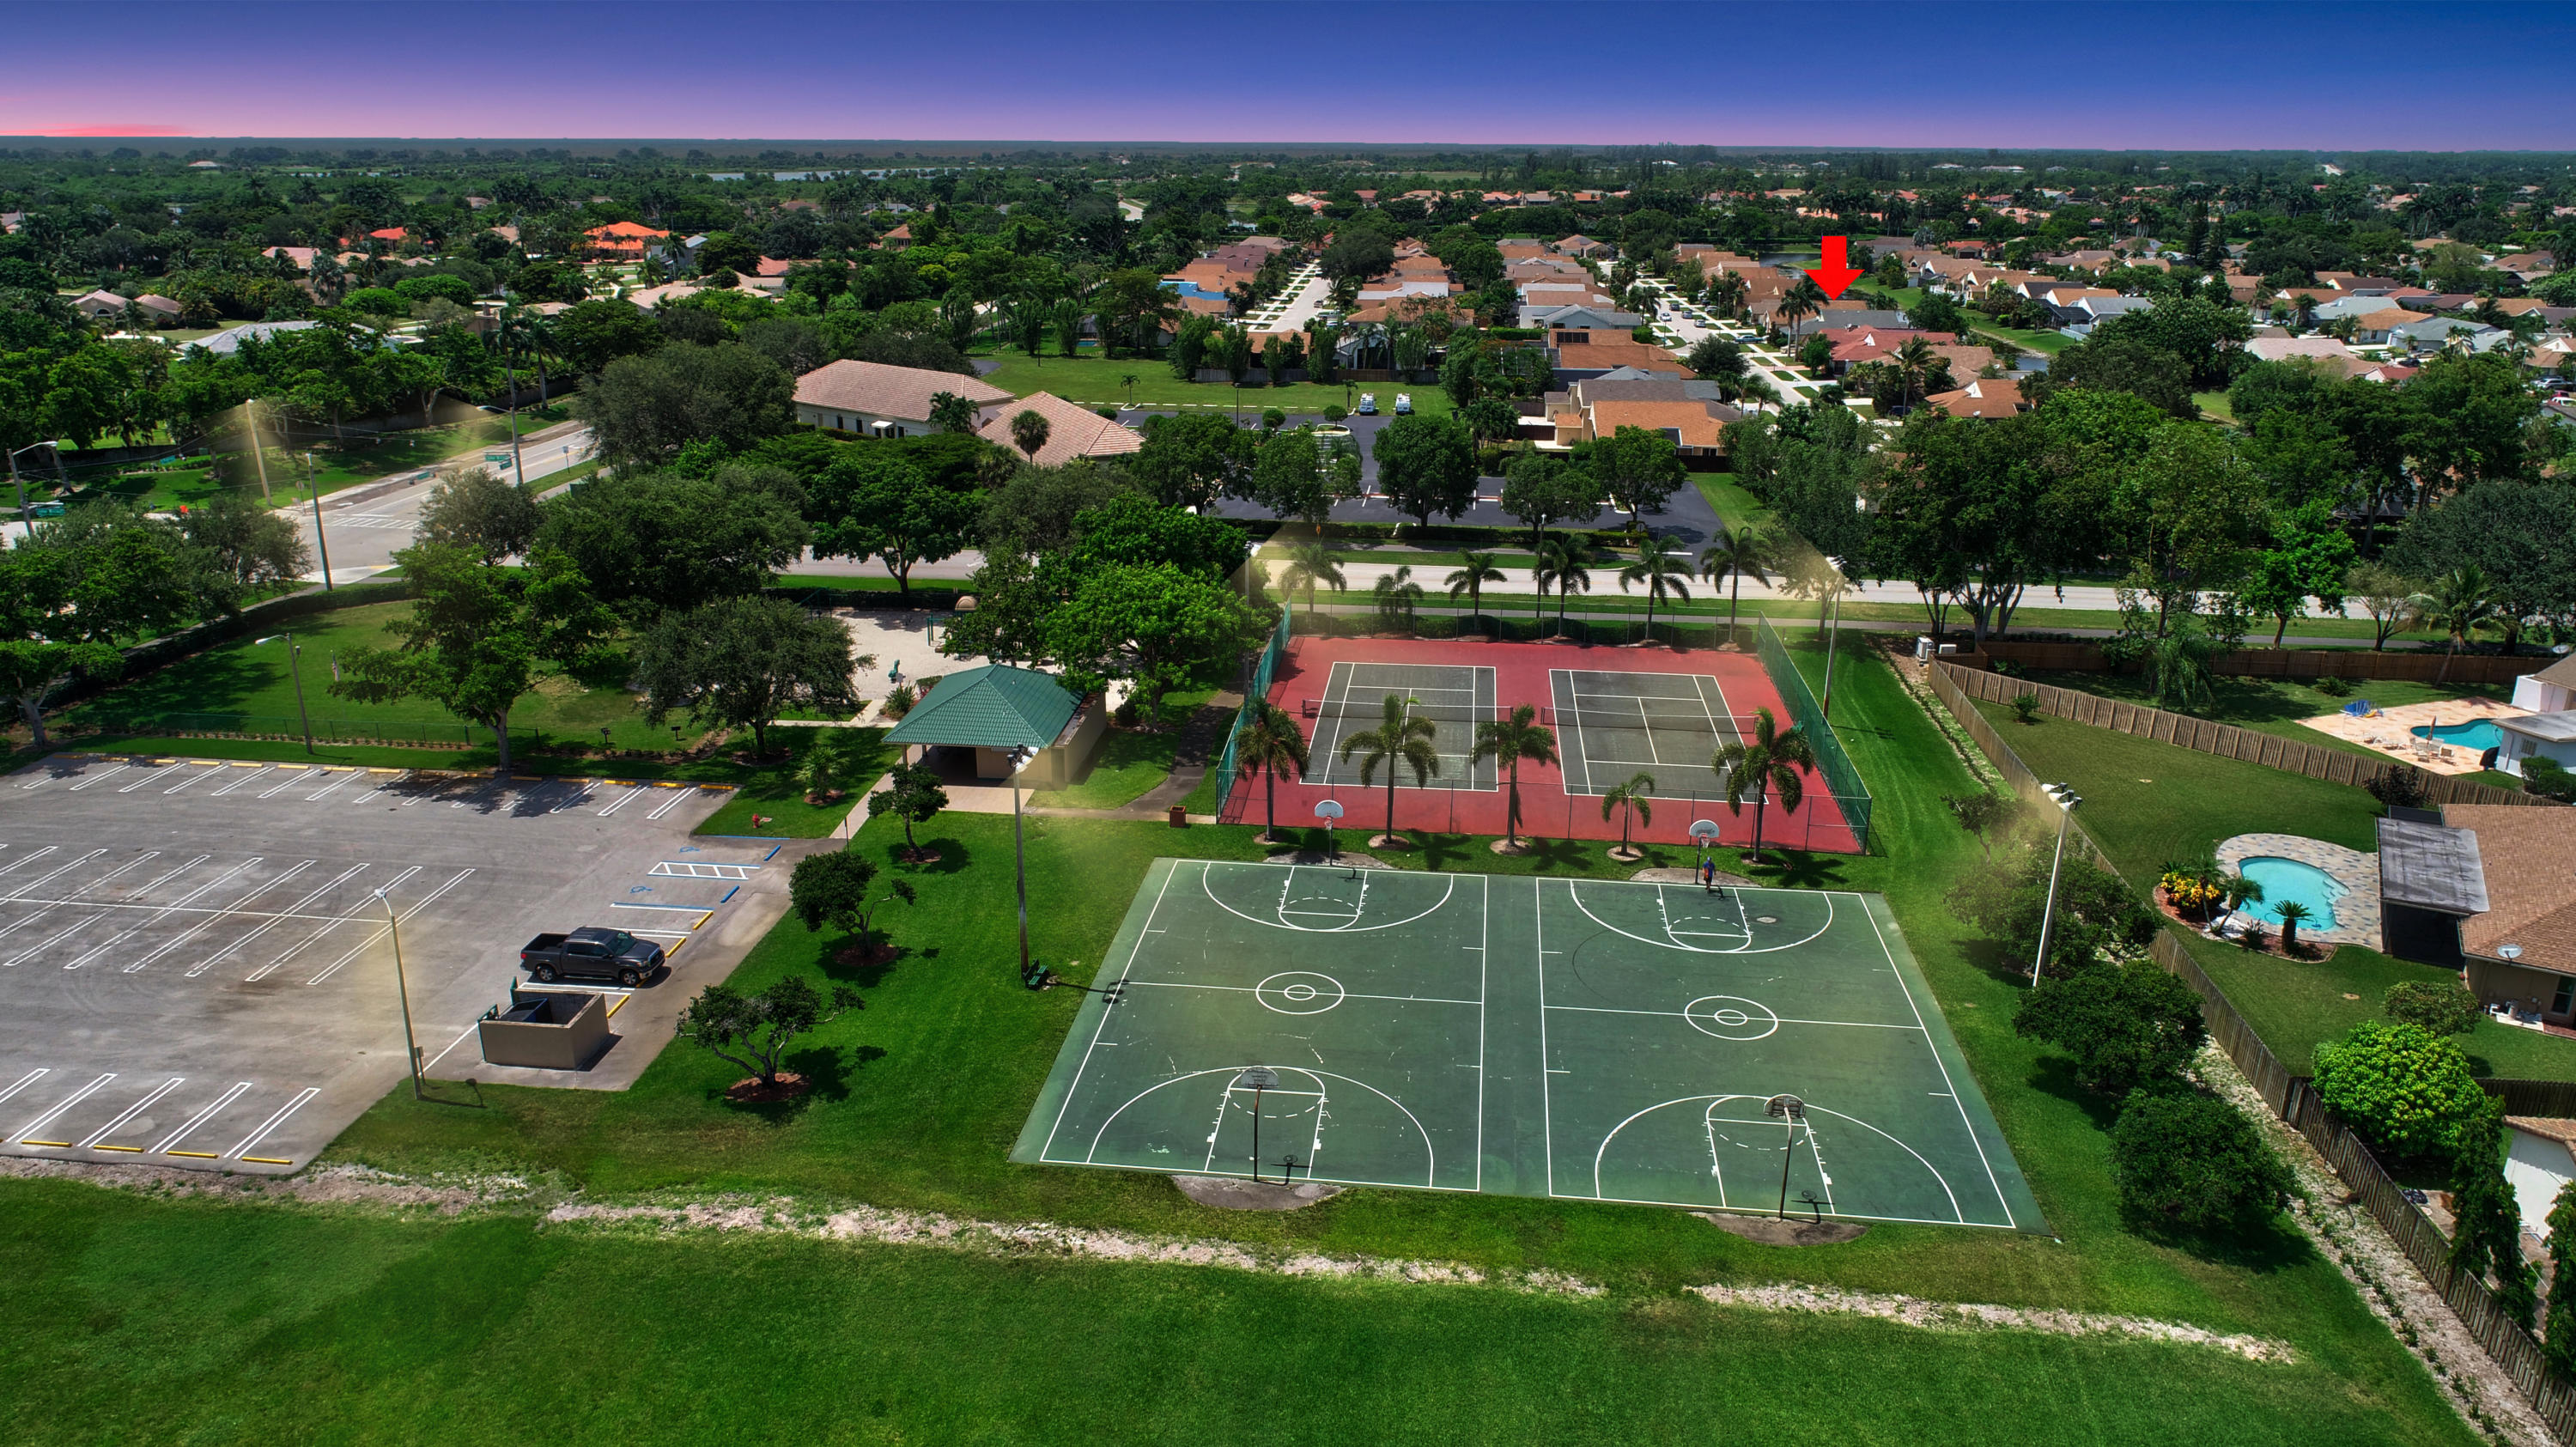 11531 Clear Creek Place, Boca Raton, Florida 33428, 4 Bedrooms Bedrooms, ,2 BathroomsBathrooms,Single Family,For Sale,Loggers Run,Country Landing,Clear Creek,RX-10464117